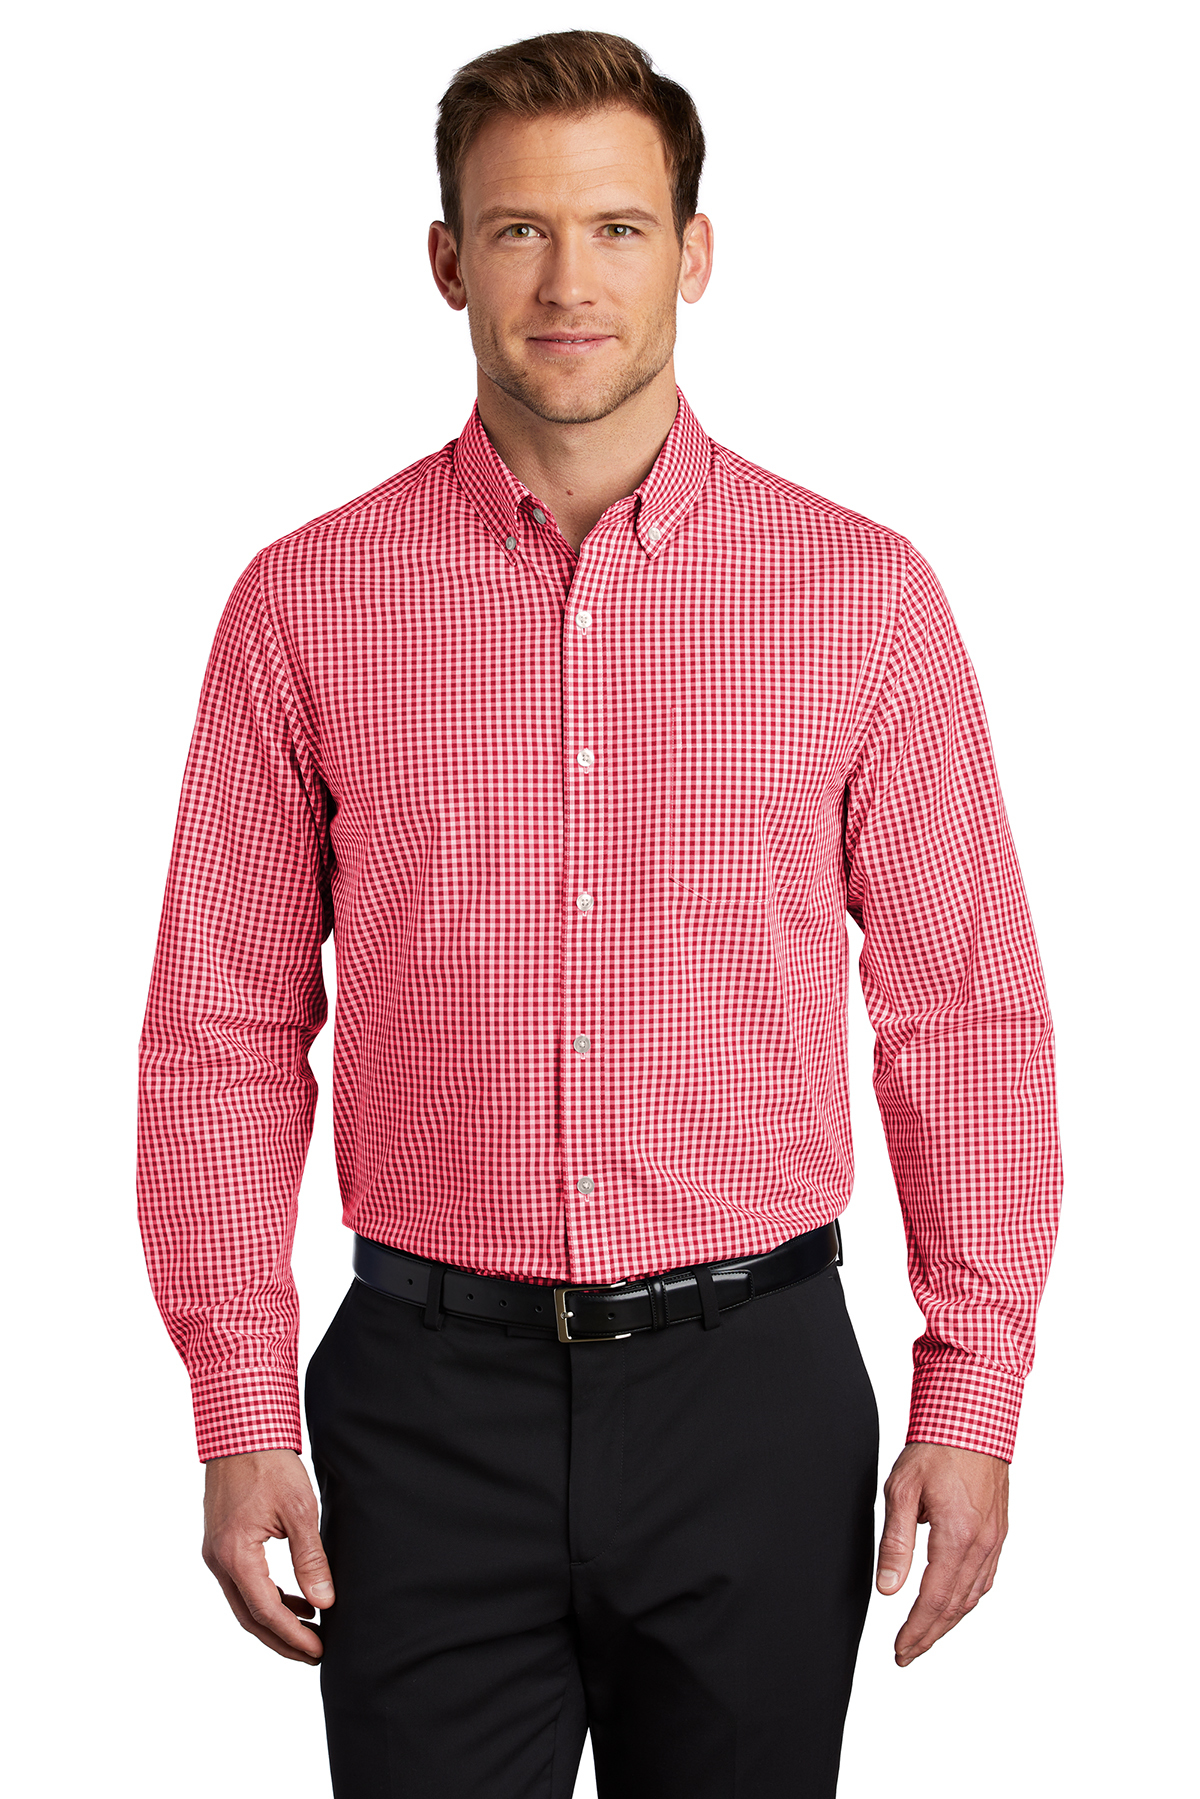 Port Authority W644 - Broadcloth Gingham Easy Care Shirt